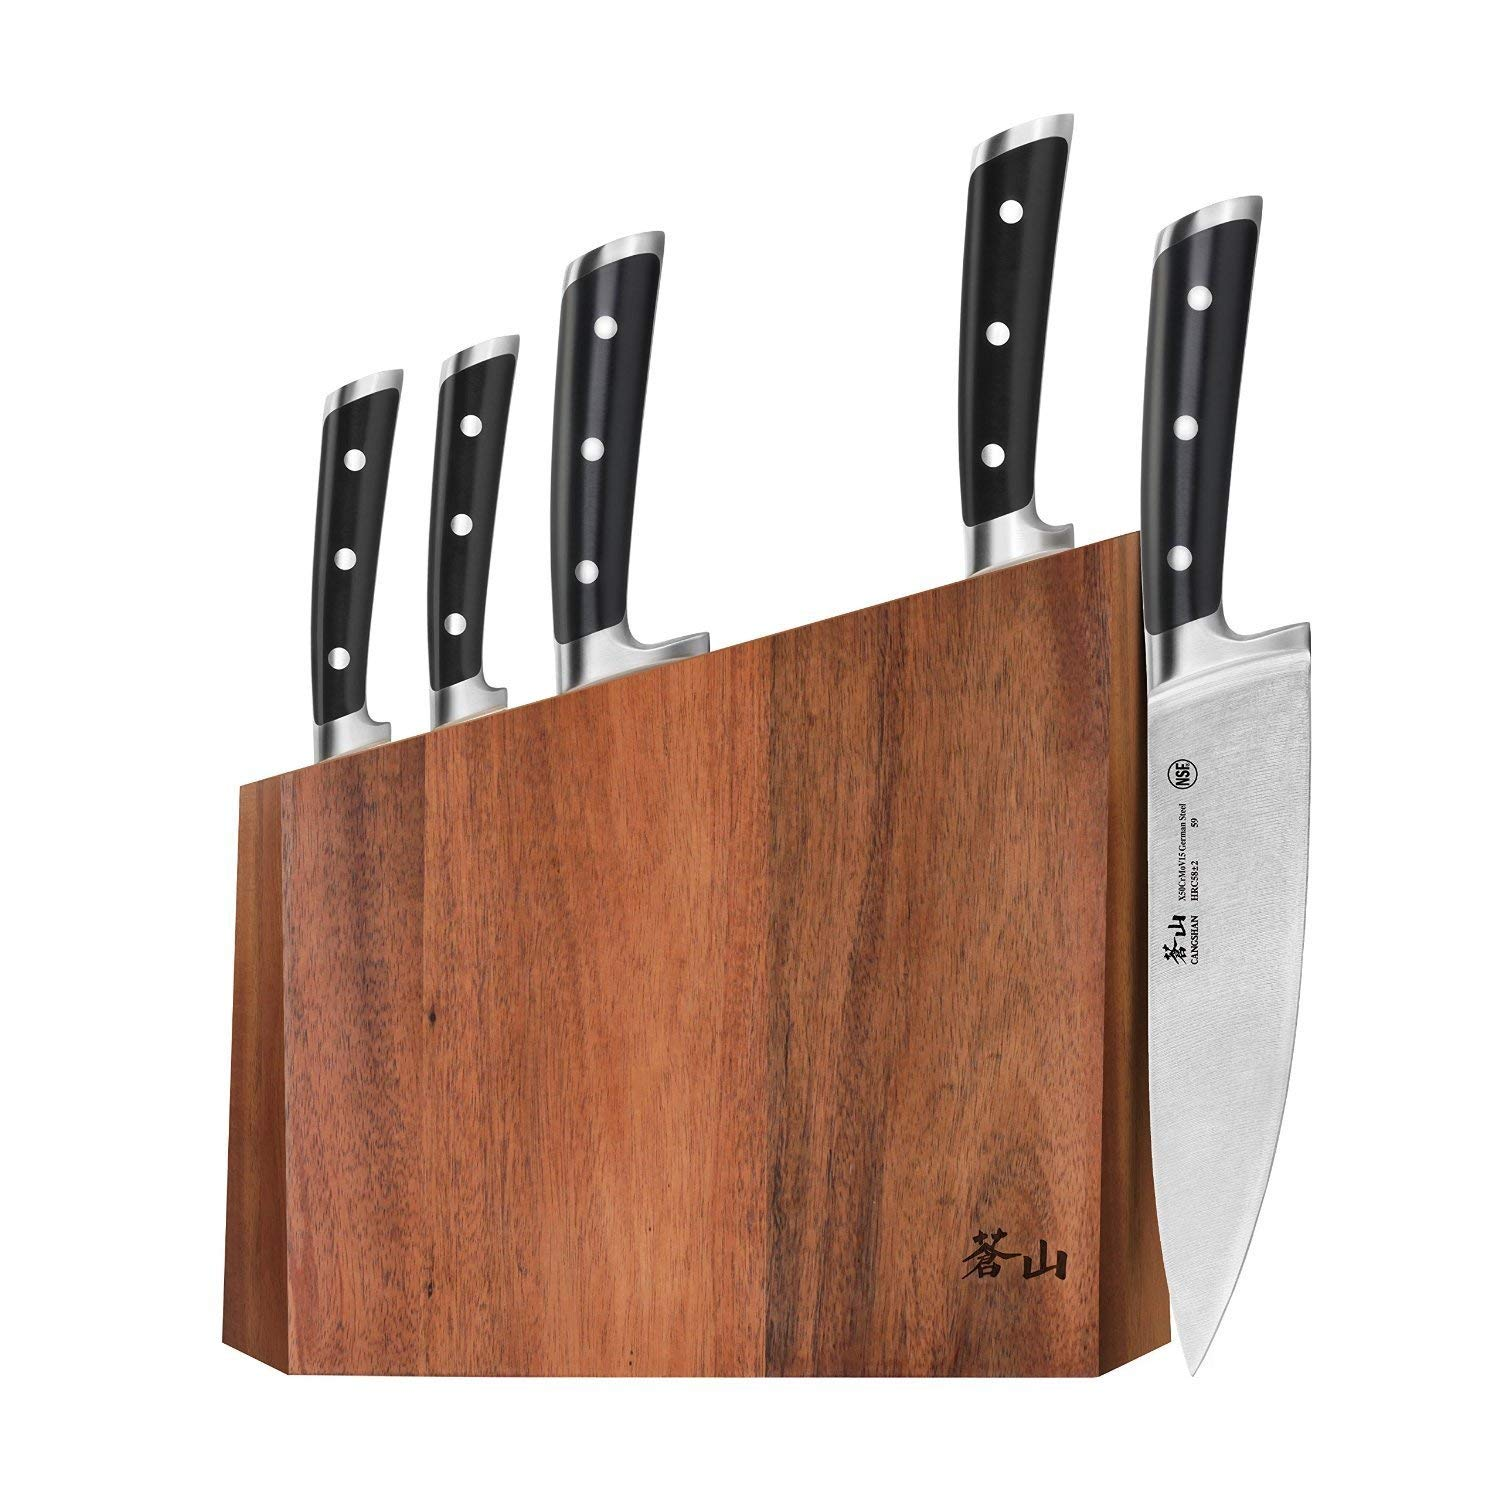 Cangshan S Series 59656 6-Piece German Steel Forged Knife Block Set